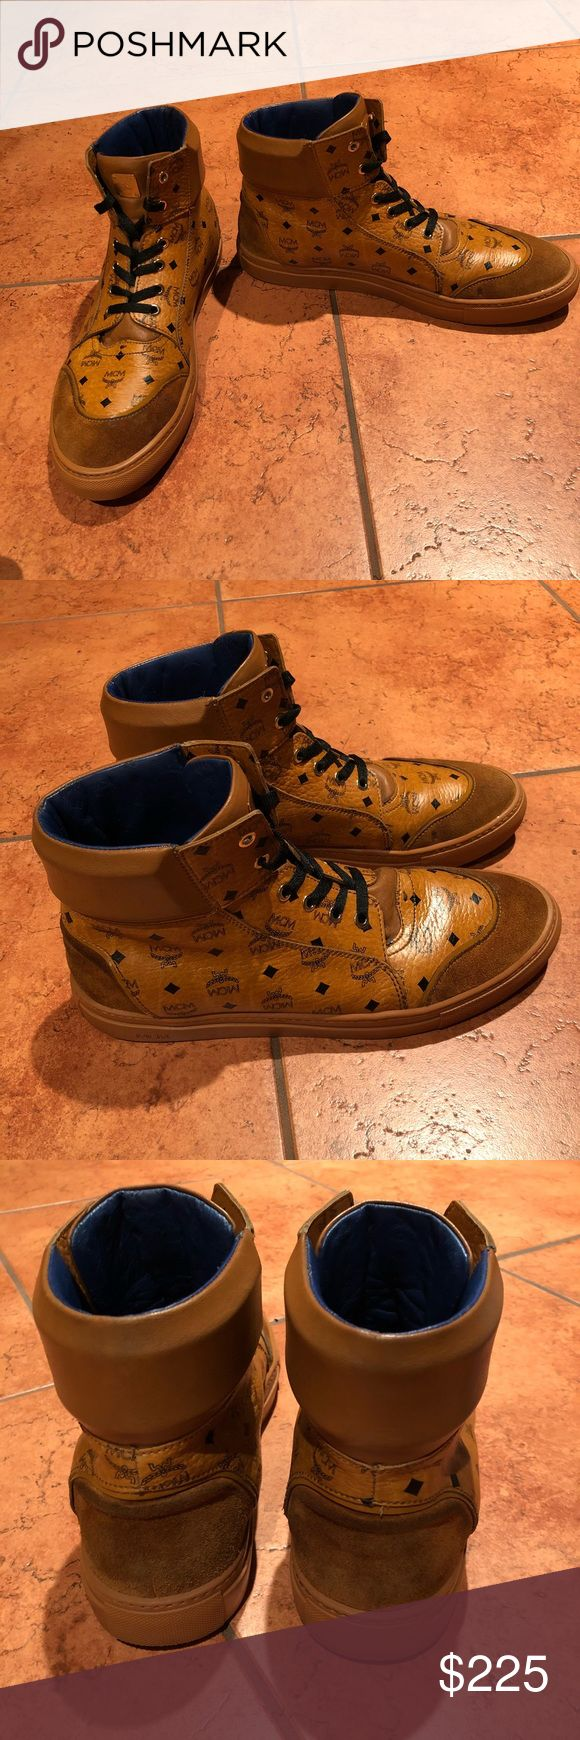 MCM Men's Classic Viseto's Hi Top Sneakers Sz 12 MCM fashion sneakers in perfect condition. Comment with any questions! MCM Shoes Sneakers